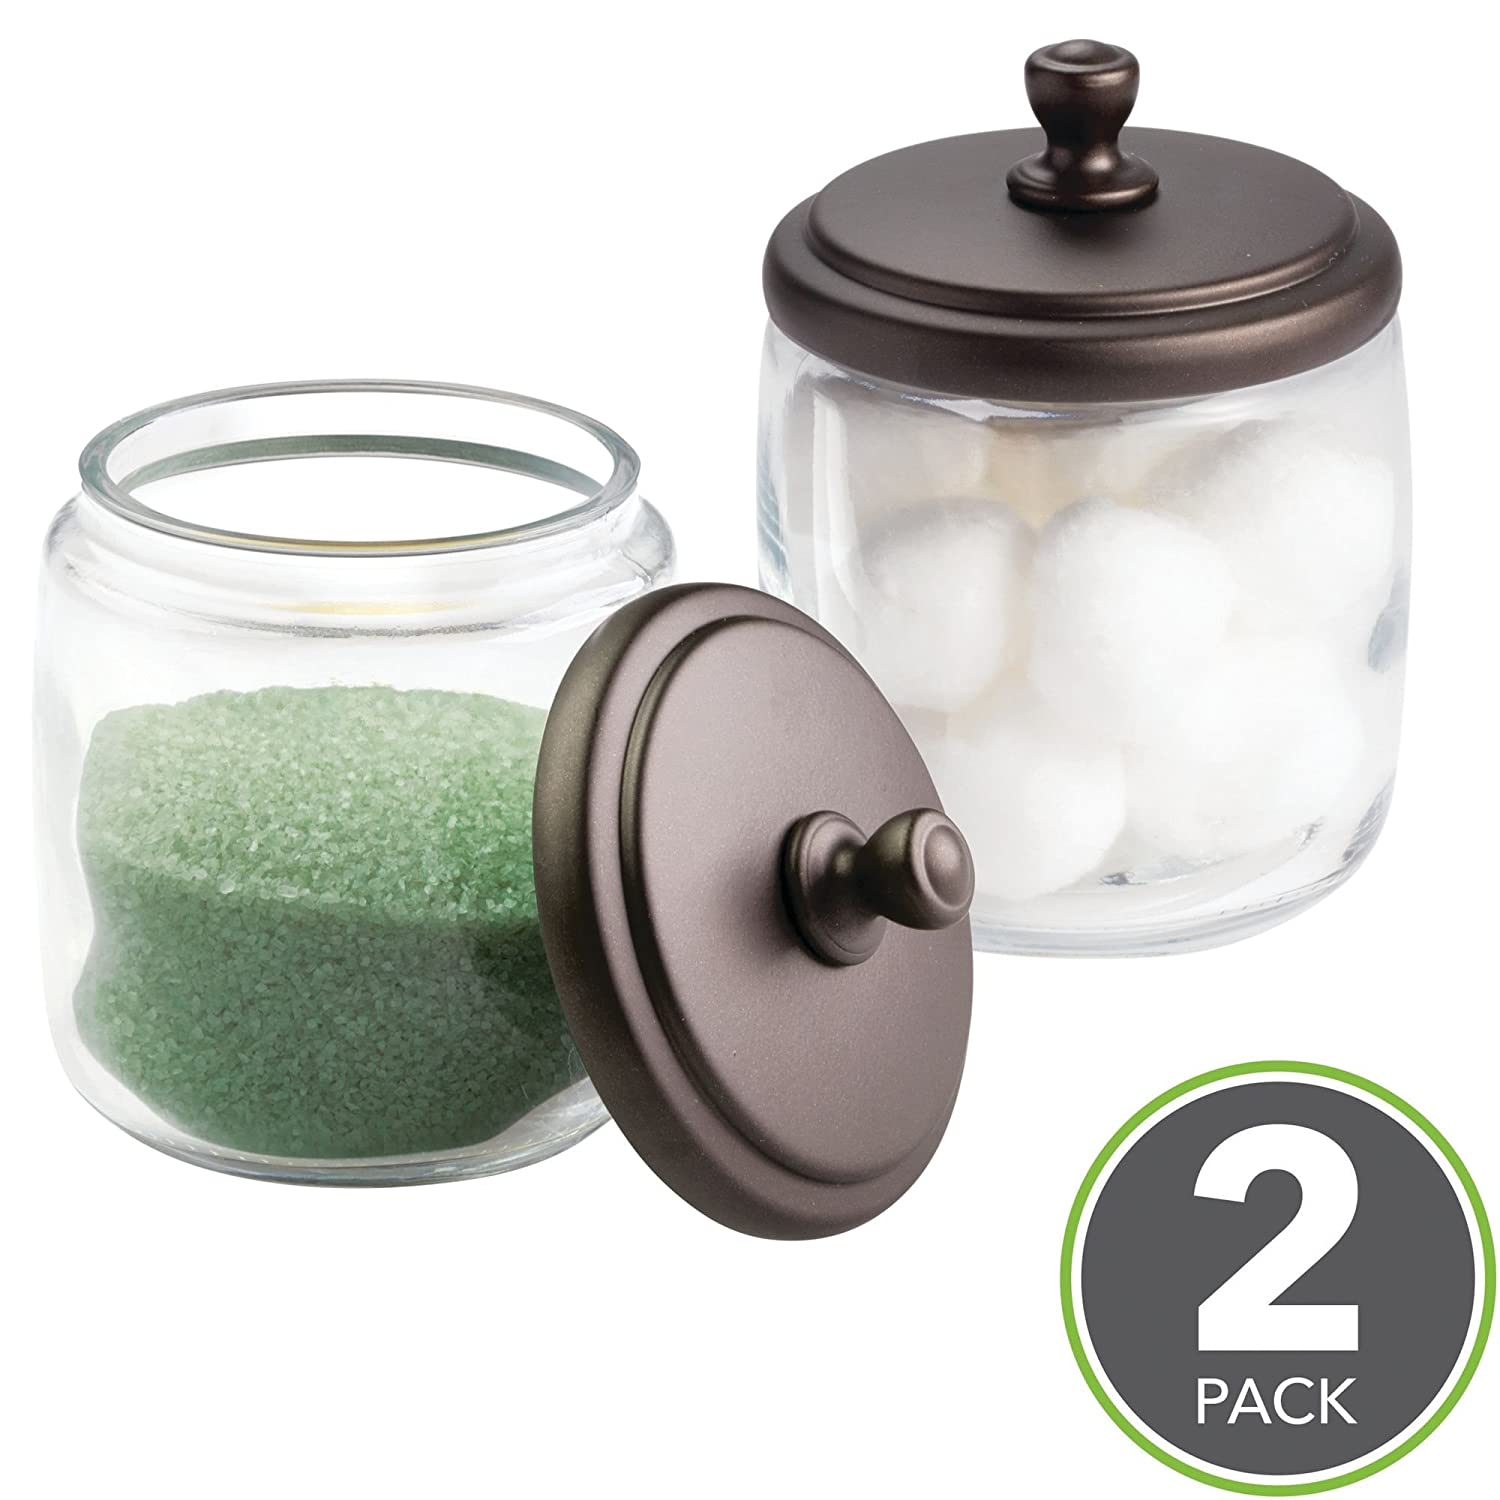 MDesign Bathroom Vanity Glass Storage Organizer Canister Jars For Q Tips,  Cotton Swabs, Cotton